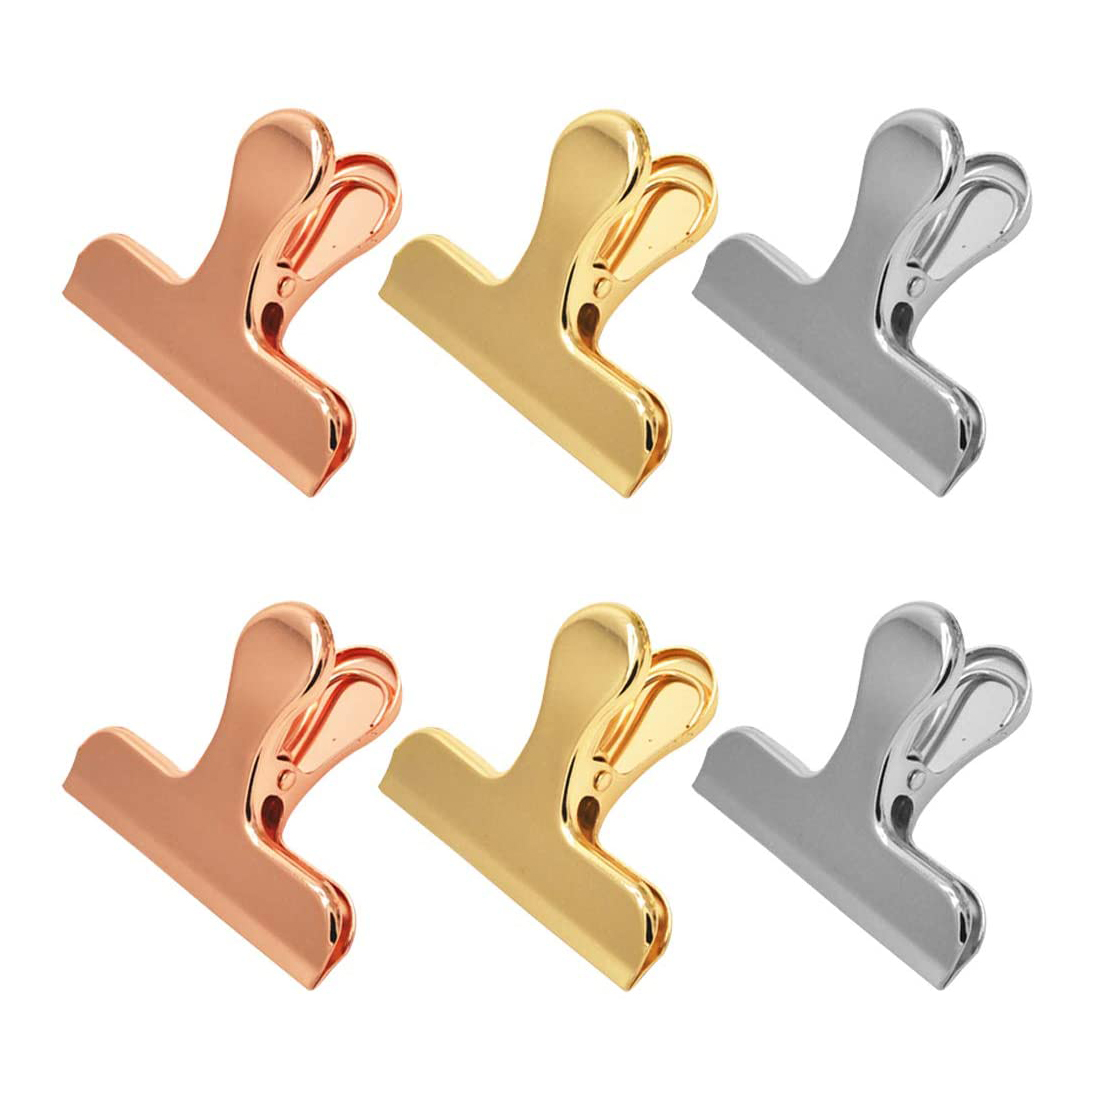 Stainless Steel Bag Clips